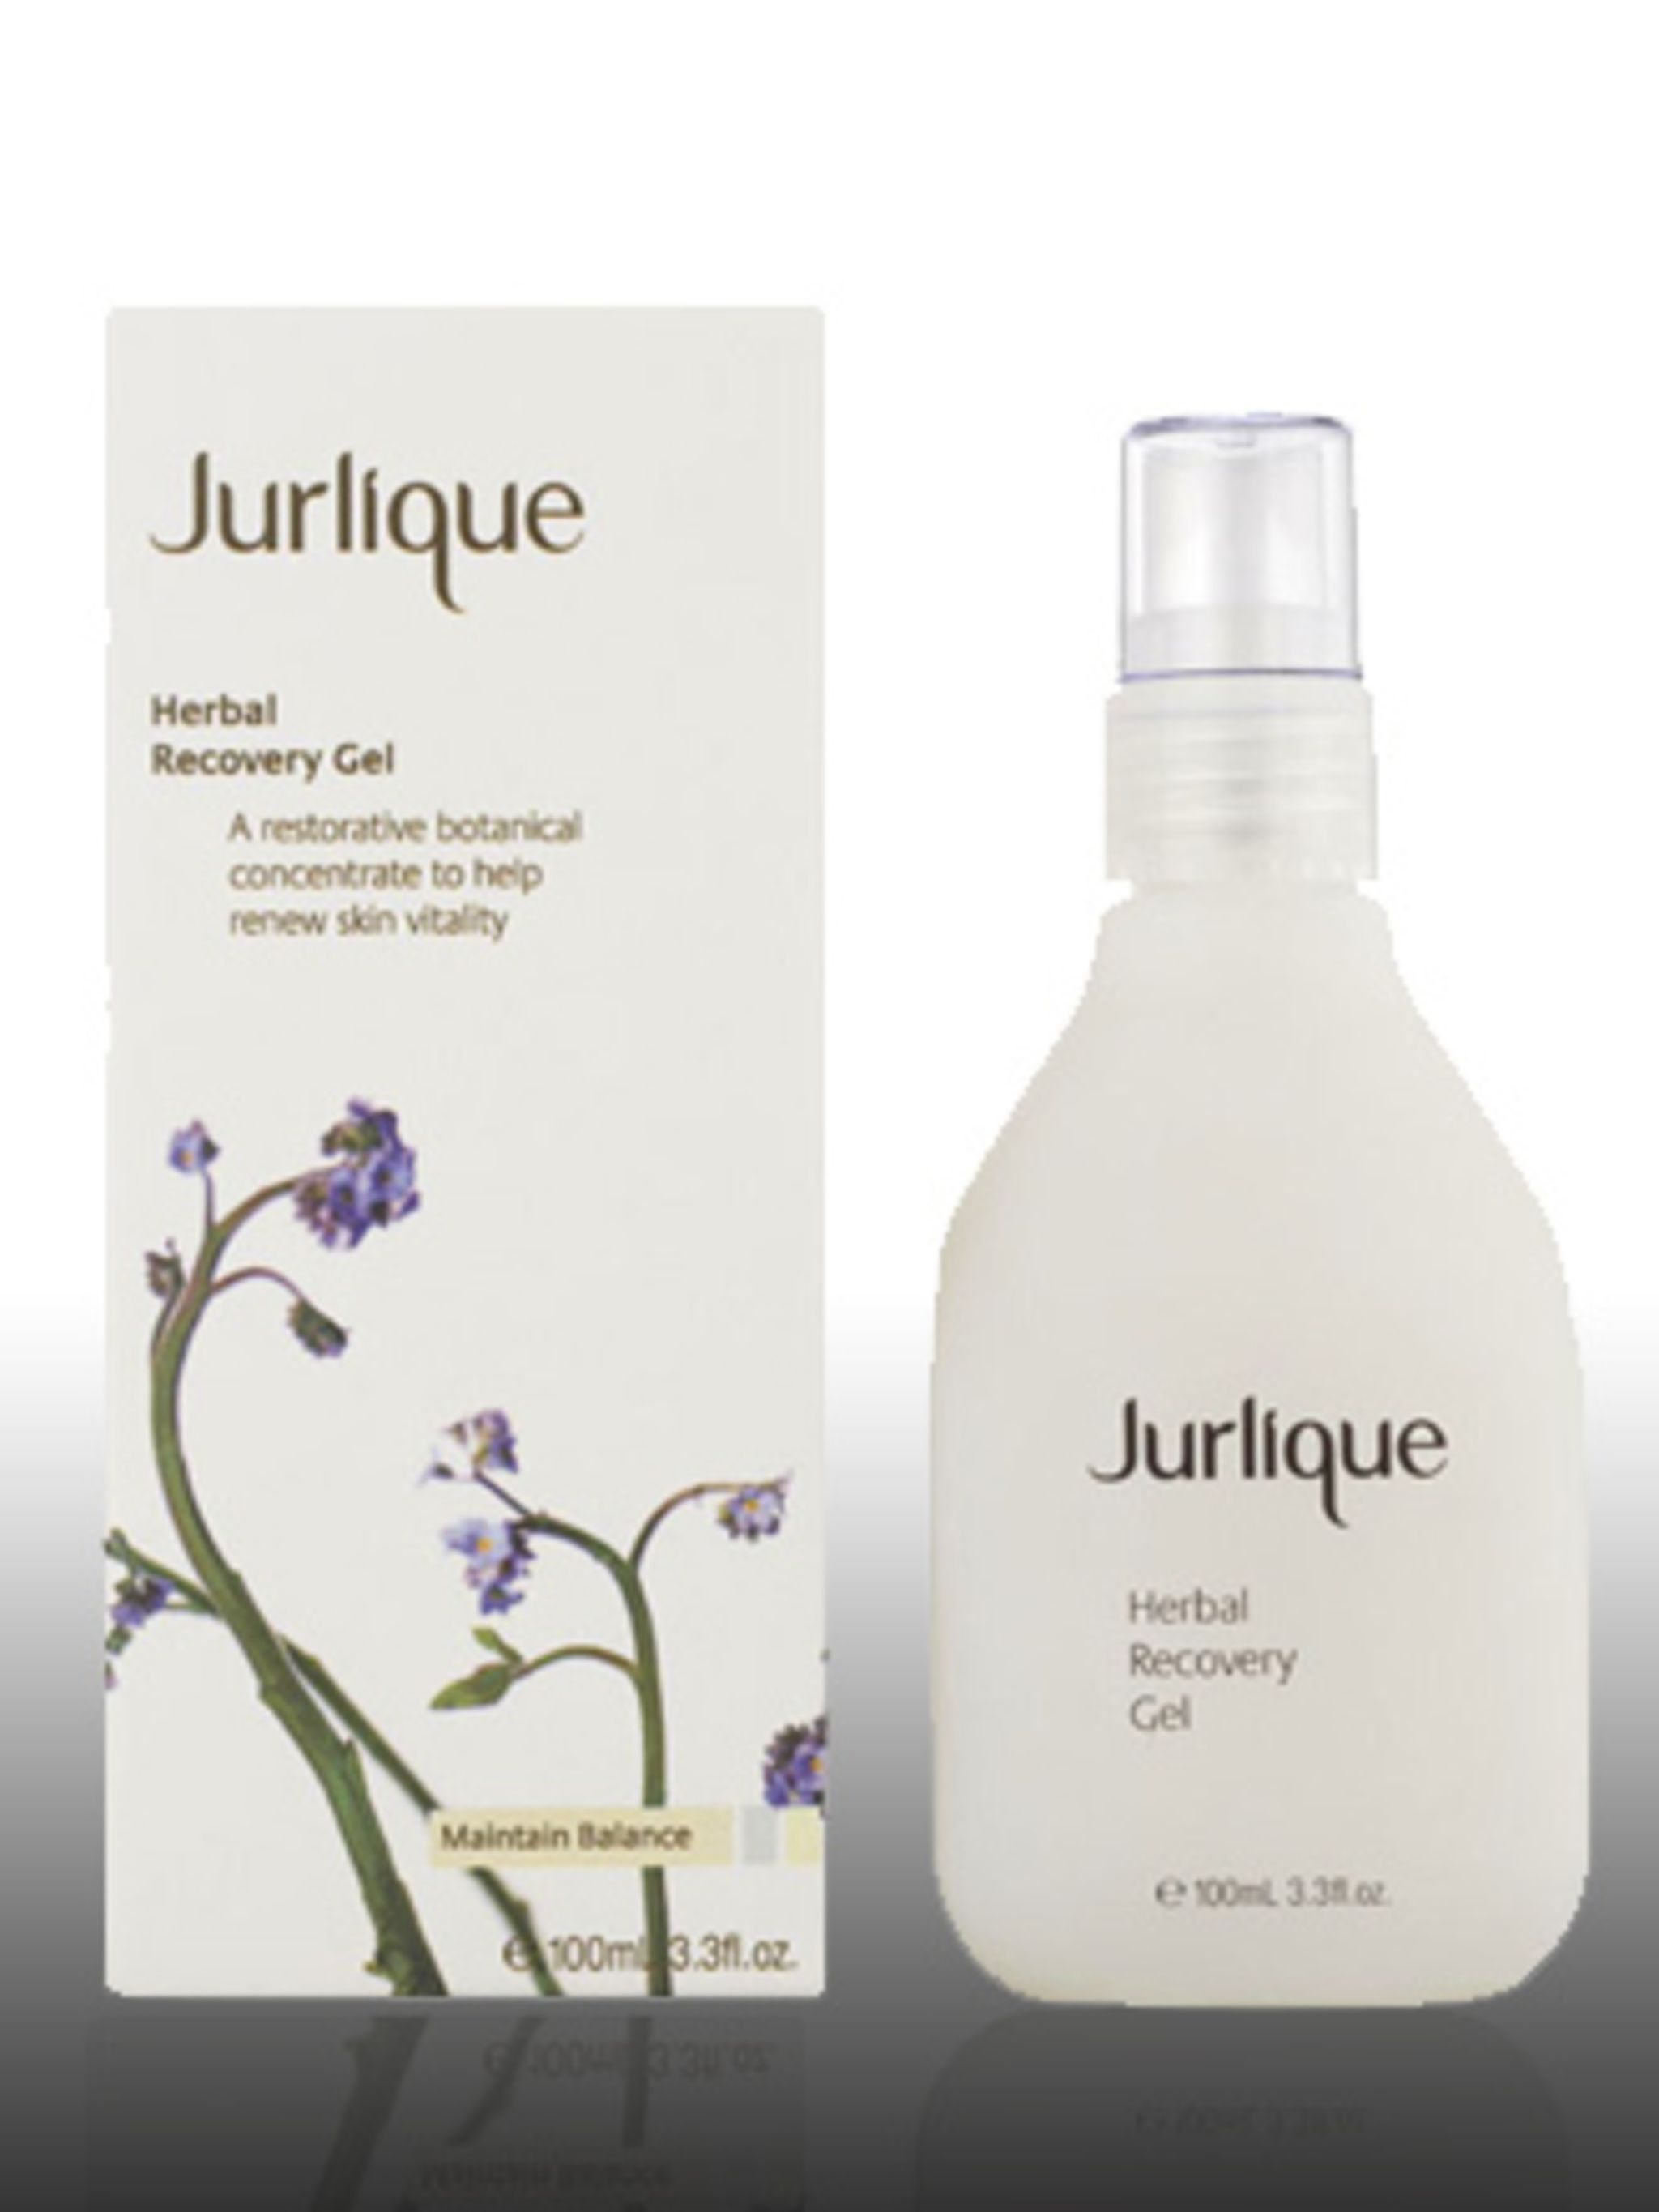 """<p>Herbal Recovery Gel, £45 by Jurlique at <a href=""""http://www.hqhair.com/code/products.asp?PageID=1495&SectionID=2142&FeaturedID=20157&FeaturedProduct=13563&pID=1"""">HQhair</a> </p><p>Jurlique farm their own ingredients in a sustainable way"""